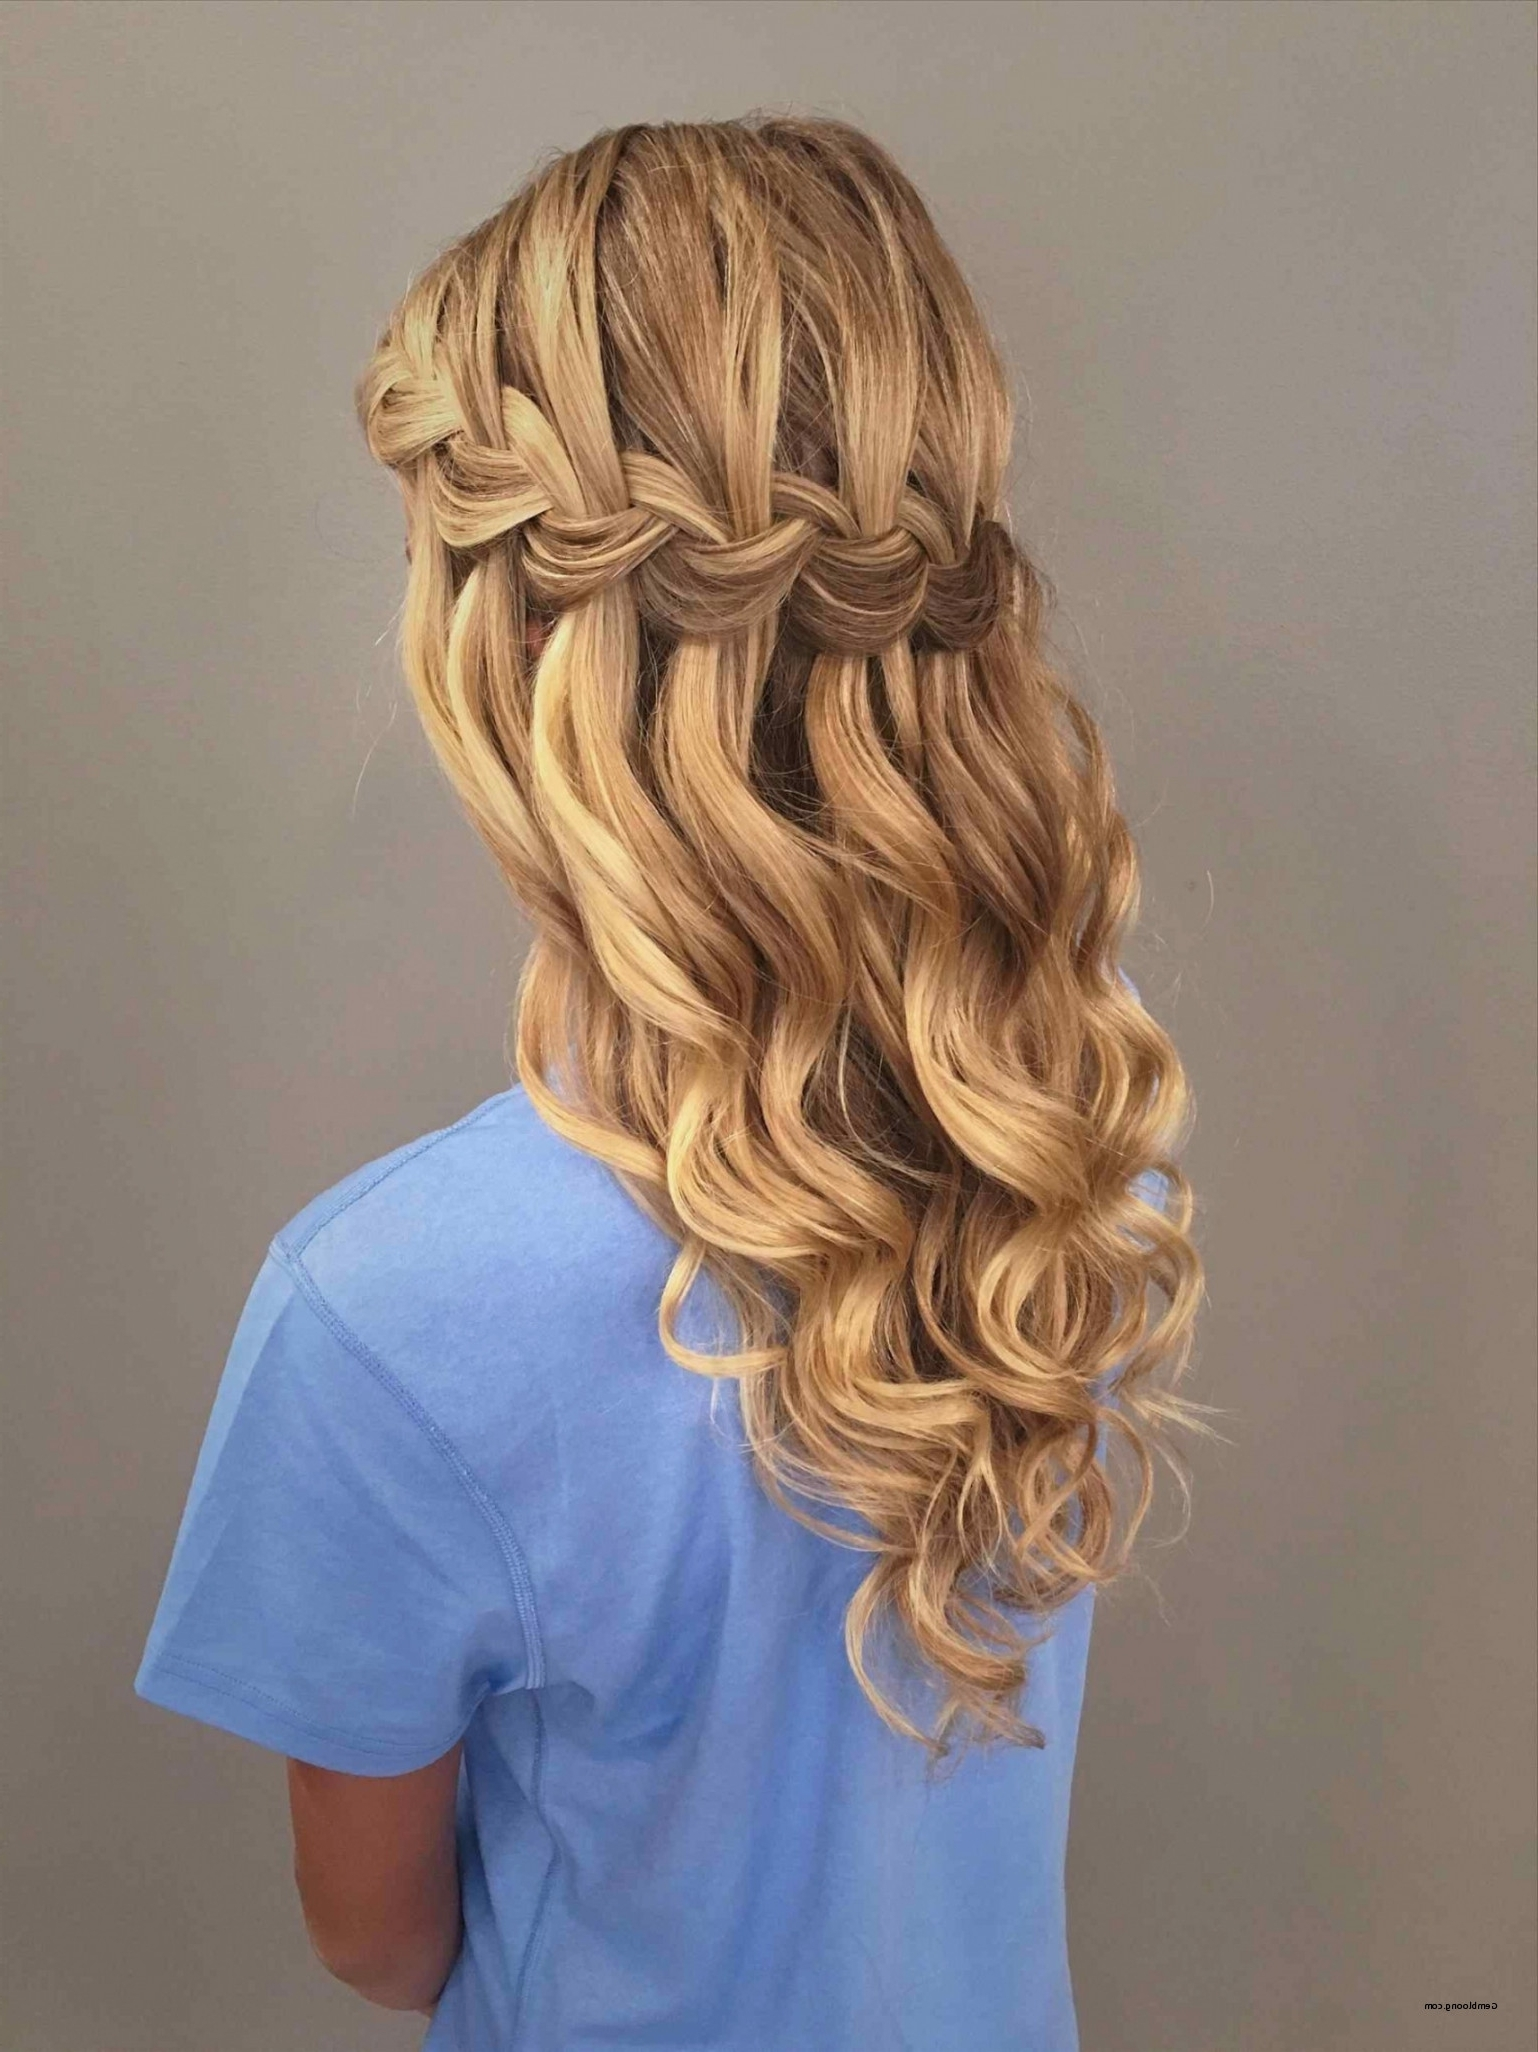 Wavy Hairstyles With Braid For Prom Fresh Curly Hairstyles Awesome Inside Popular Braids With Curls Hairstyles (View 19 of 20)